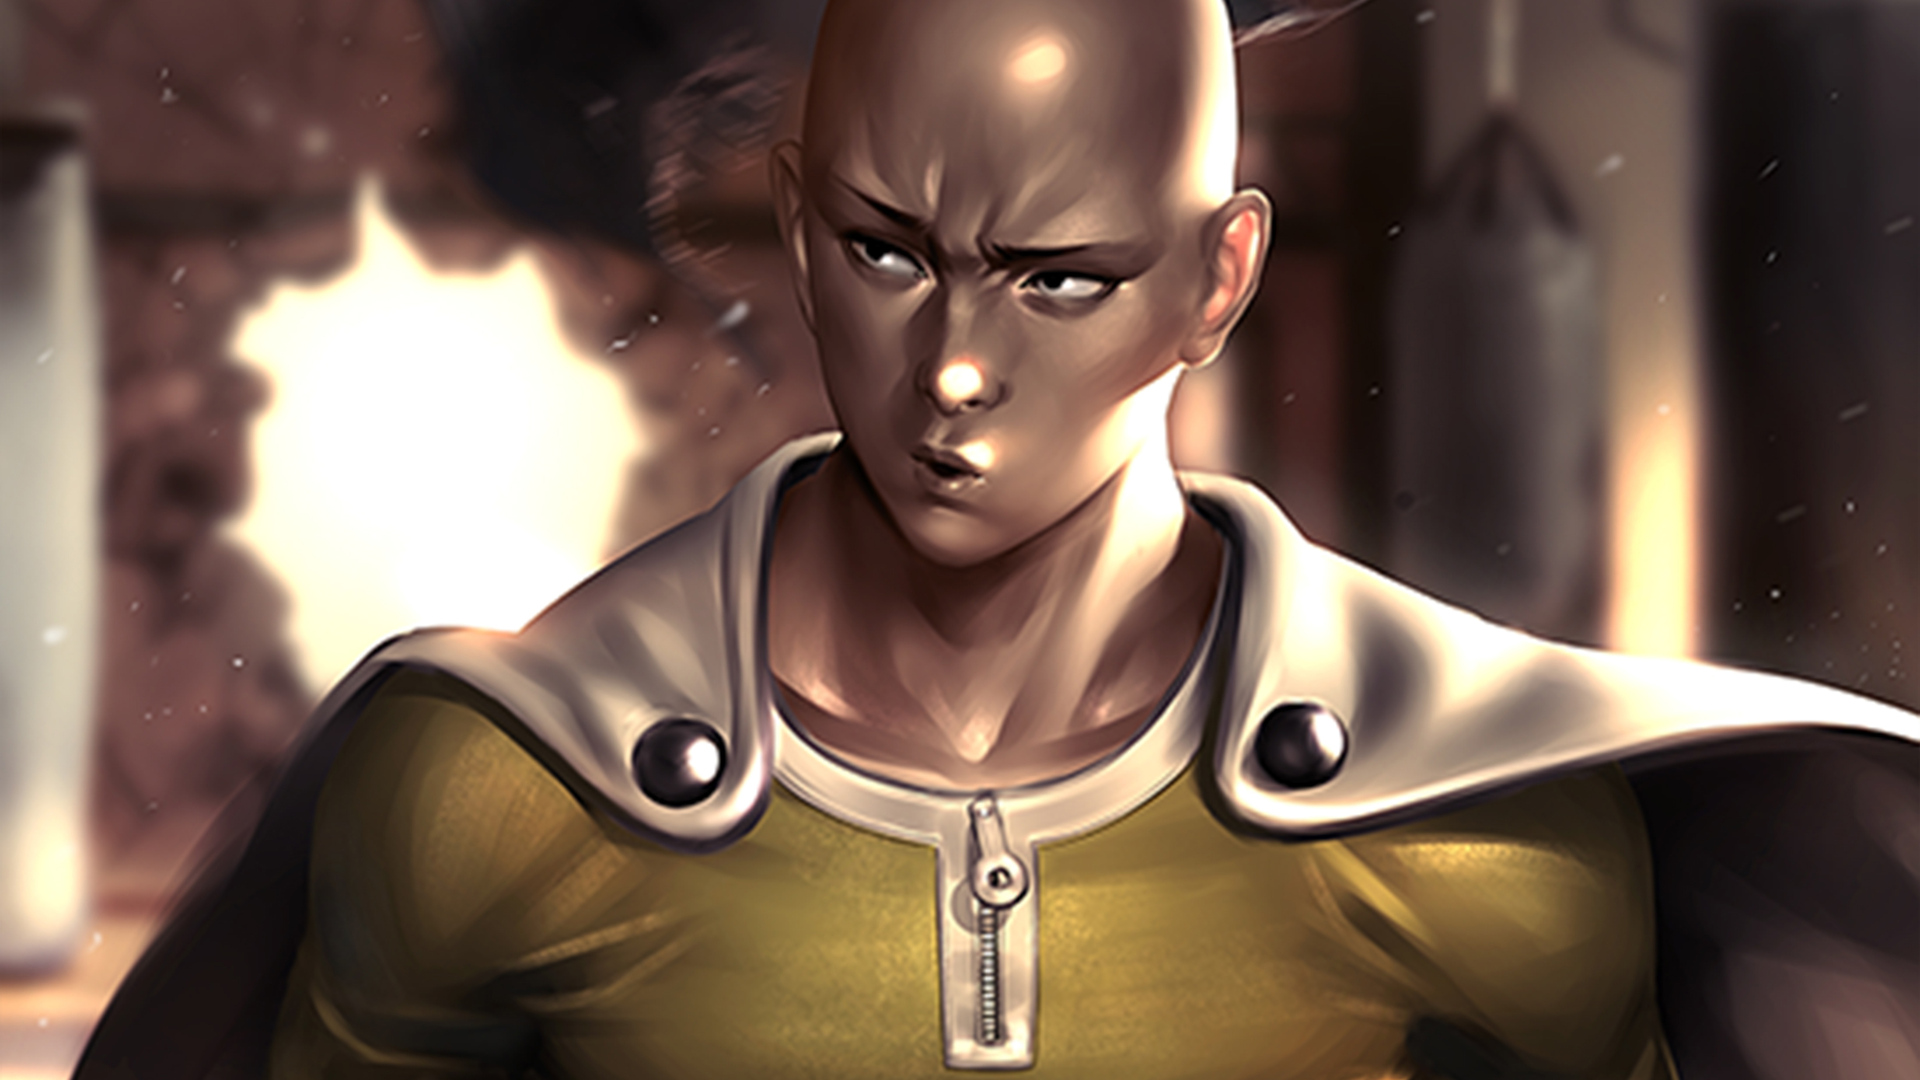 1920x1080 One Punch Man Artwork Laptop Full Hd 1080p Hd 4k